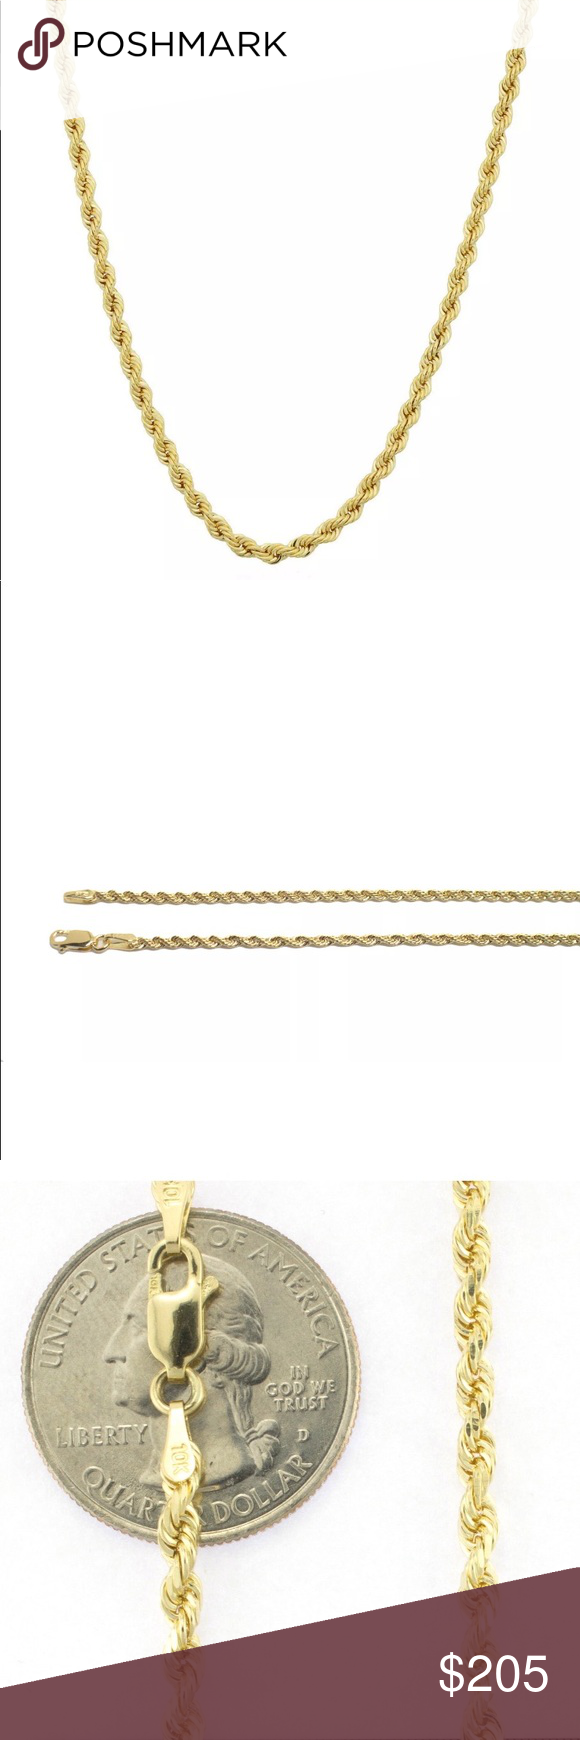 New Real Genuine Gold Rope Chain 2mm 24 Long Gold Rope Chains Mens Accessories Jewelry Rope Chain